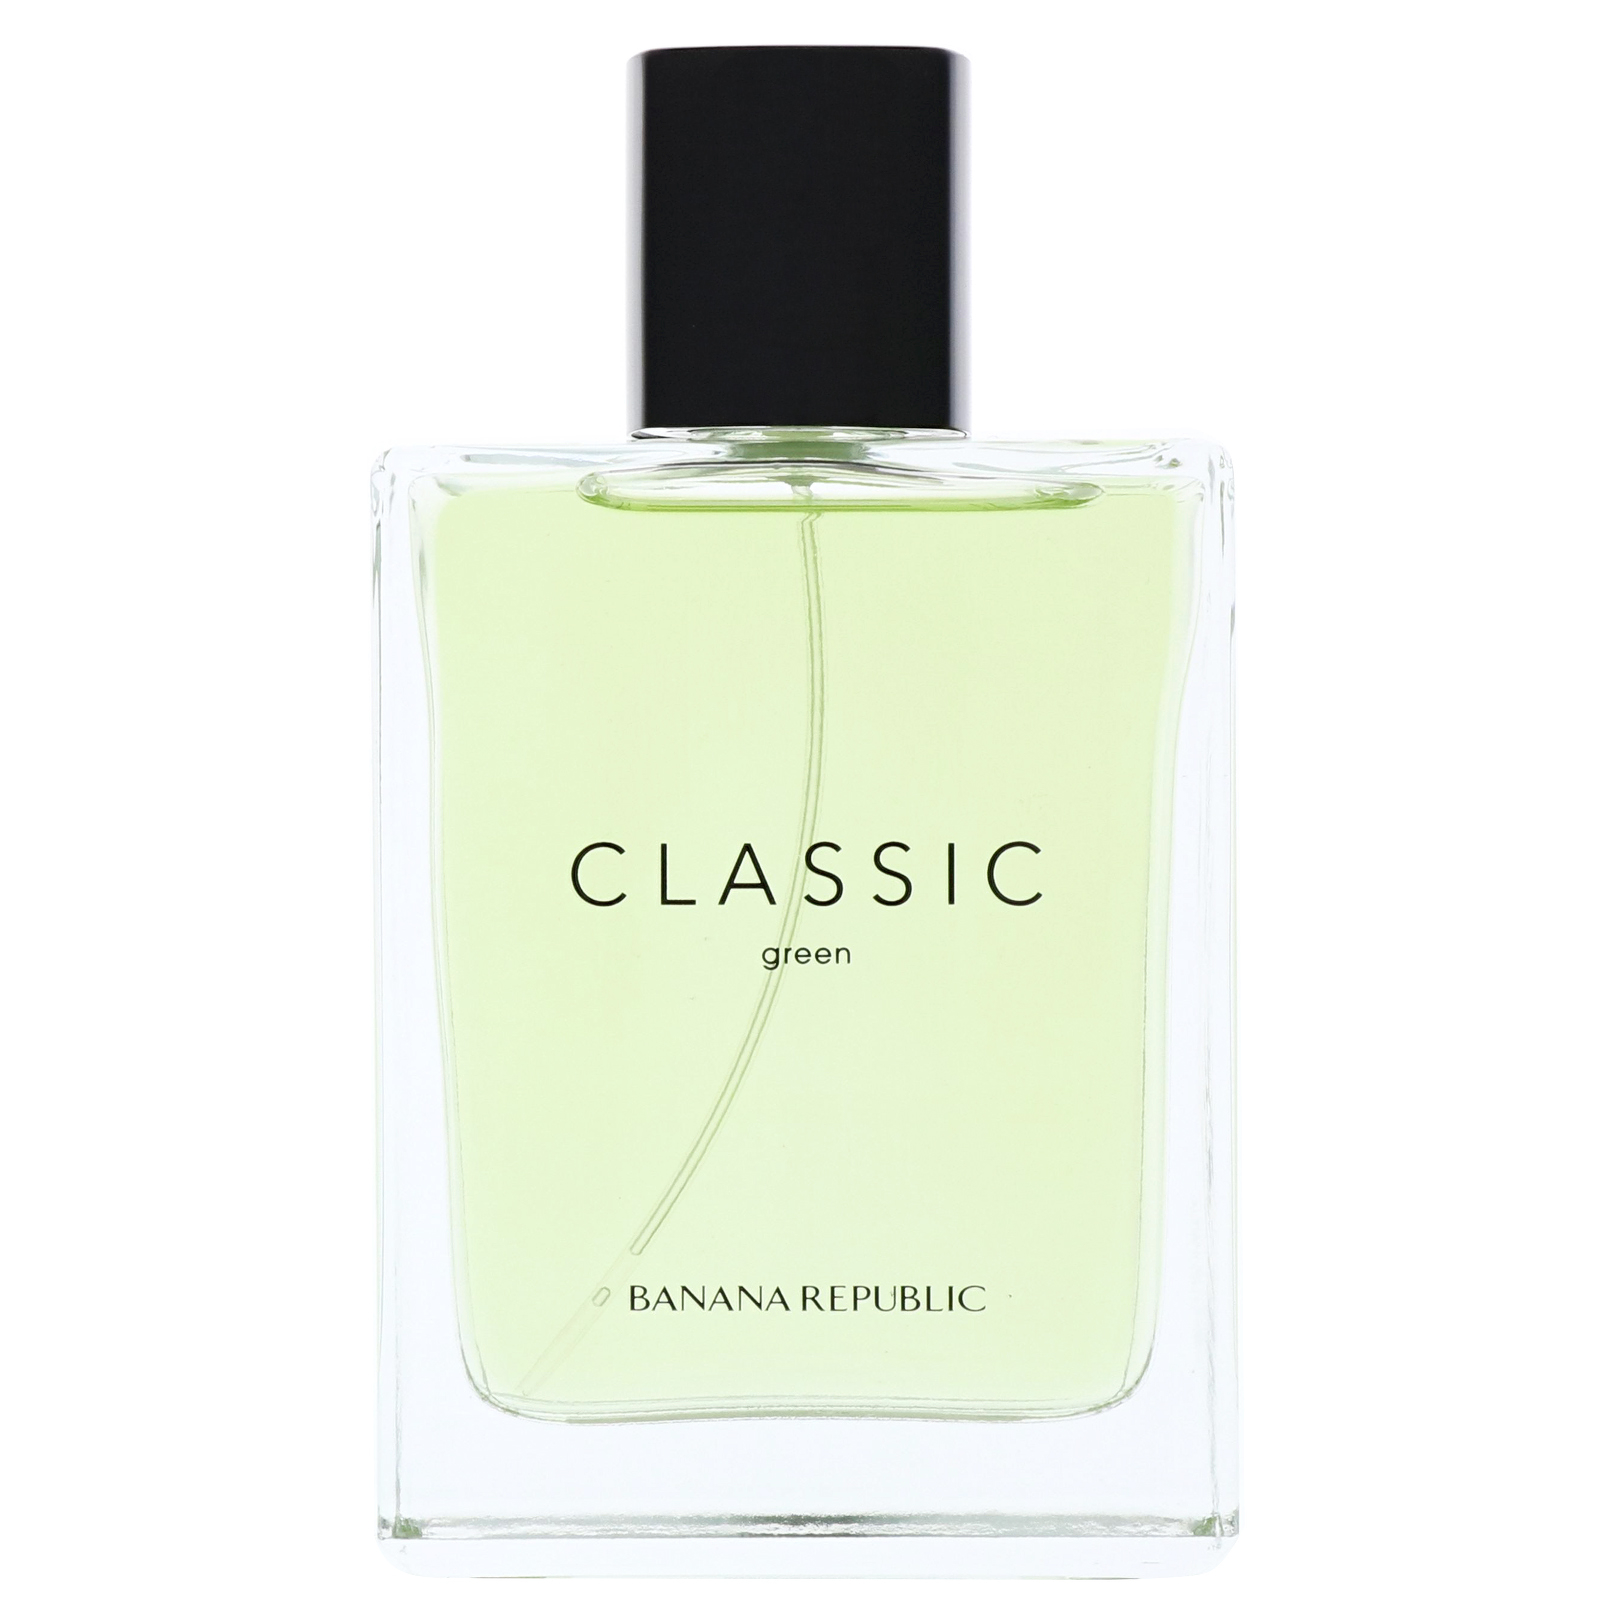 Banana Republic Classic Green Eau de Parfum Spray 125ml